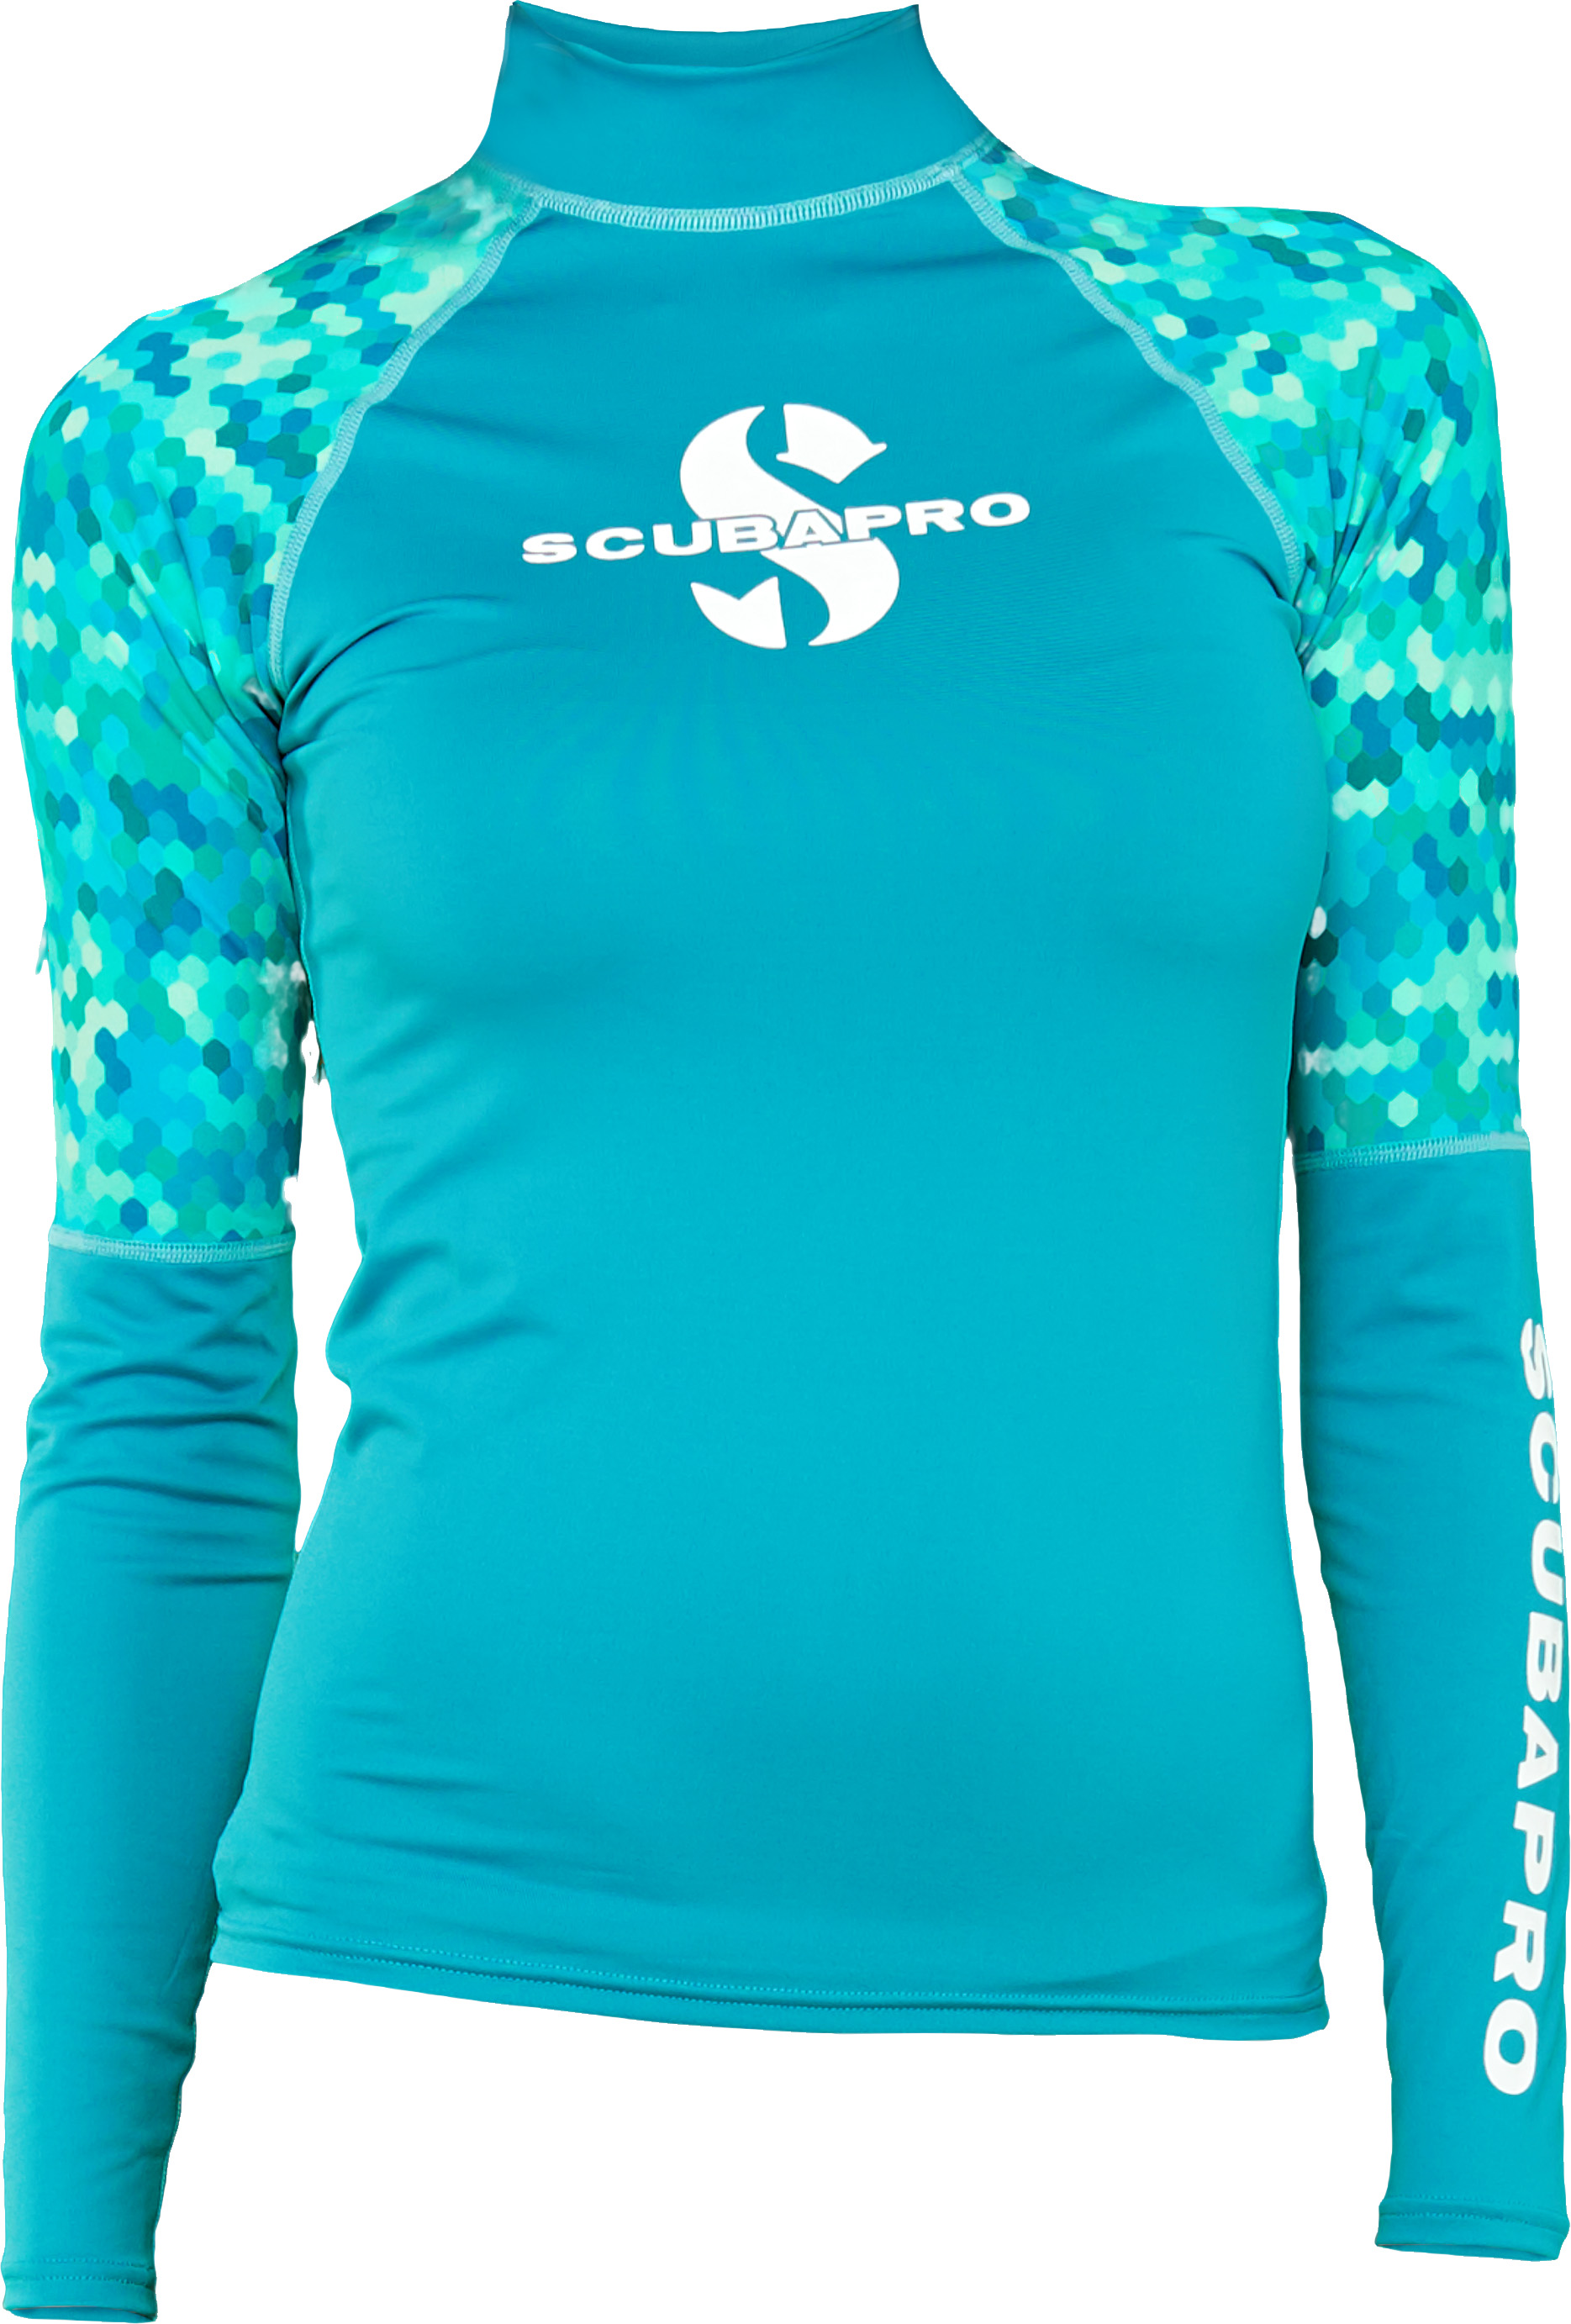 Дамска ликра с UV защита RASH GUARD CARIBBEAN LS Lady – Scubapro